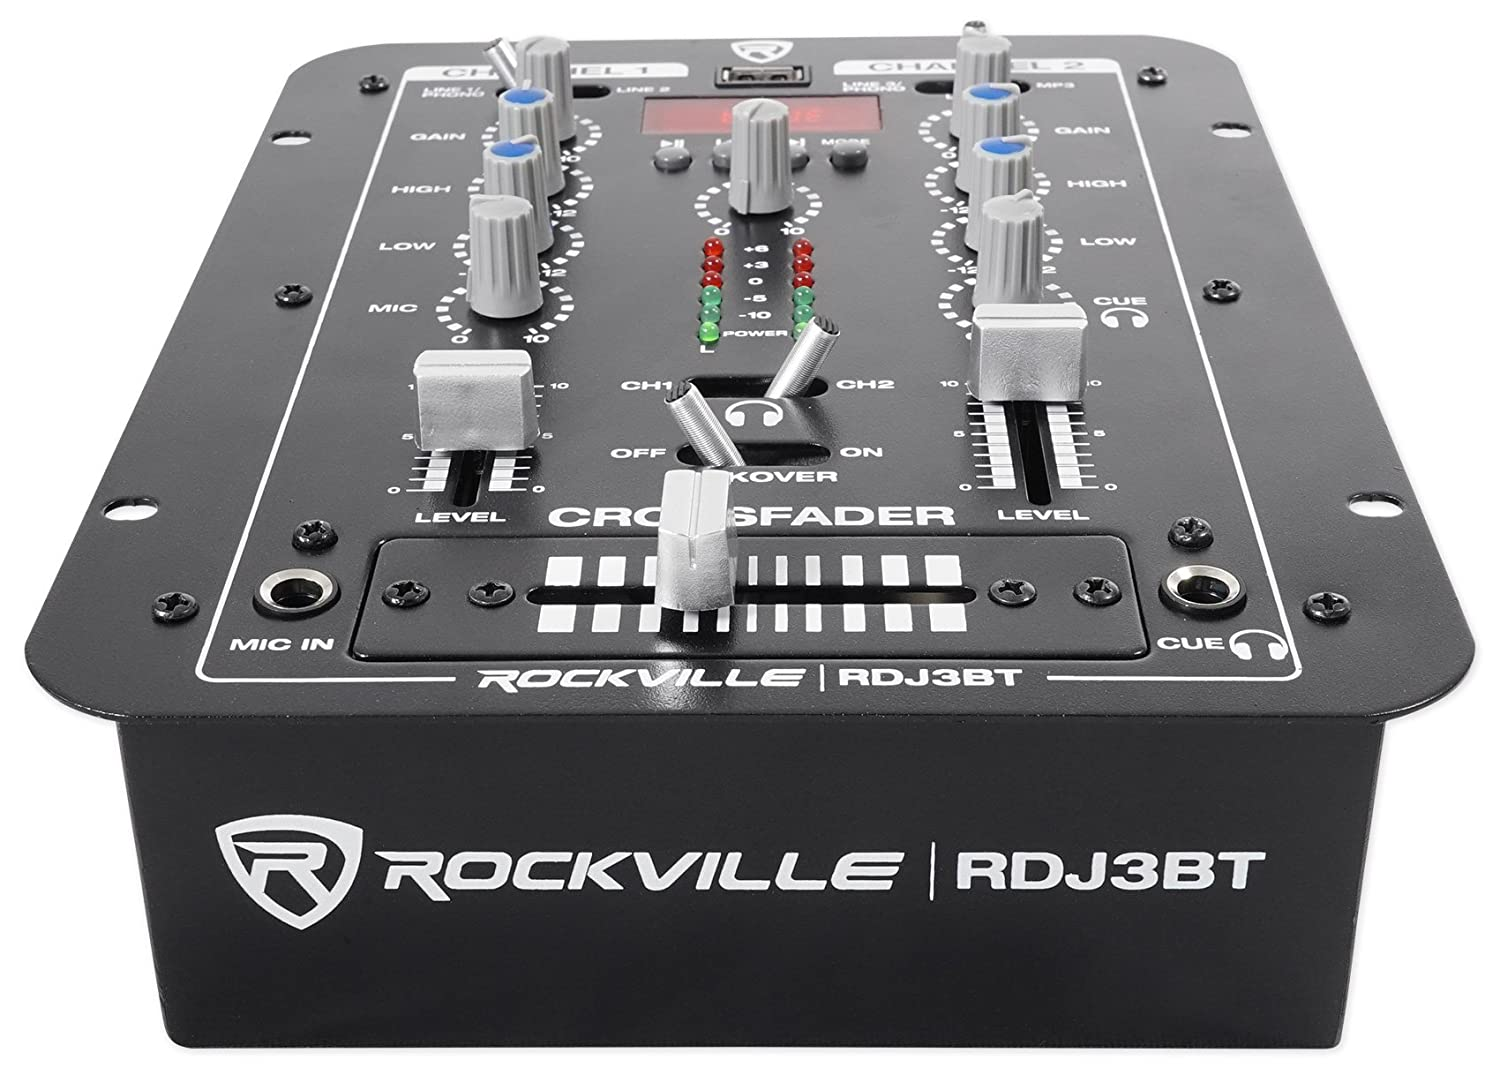 Rockville Rdj3bt 2 Channel Dj Mixer With Usb Bluetooth Dictionary Of Electronic And Engineering Terms Audio Circuit Talkover 4 Line Inputs Musical Instruments